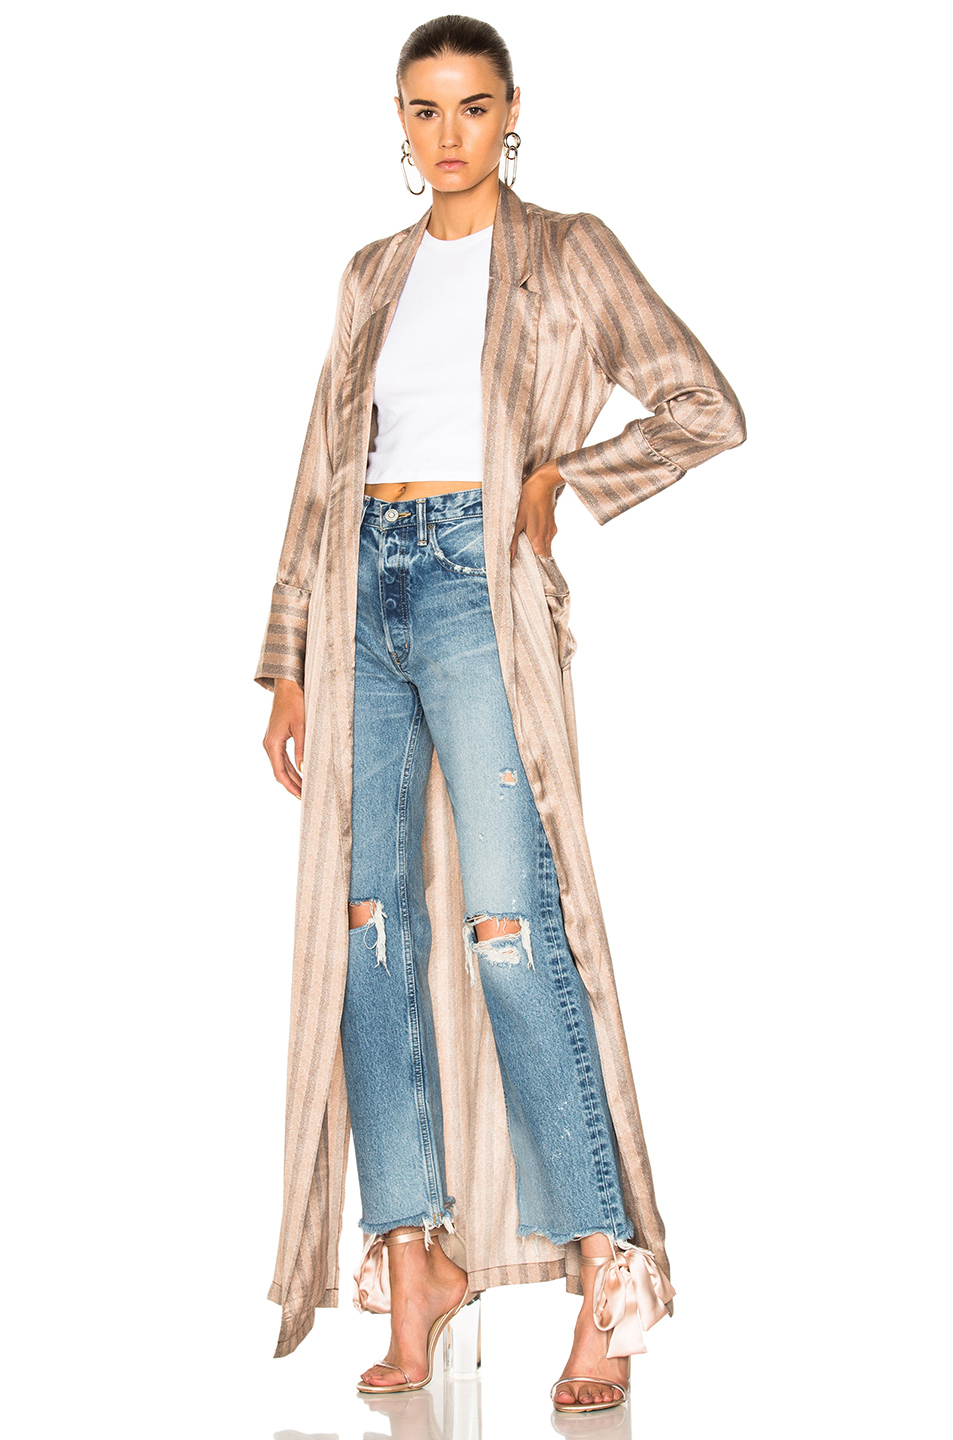 Equipment Florian Trench Coat in Gray,Neutrals,Stripes